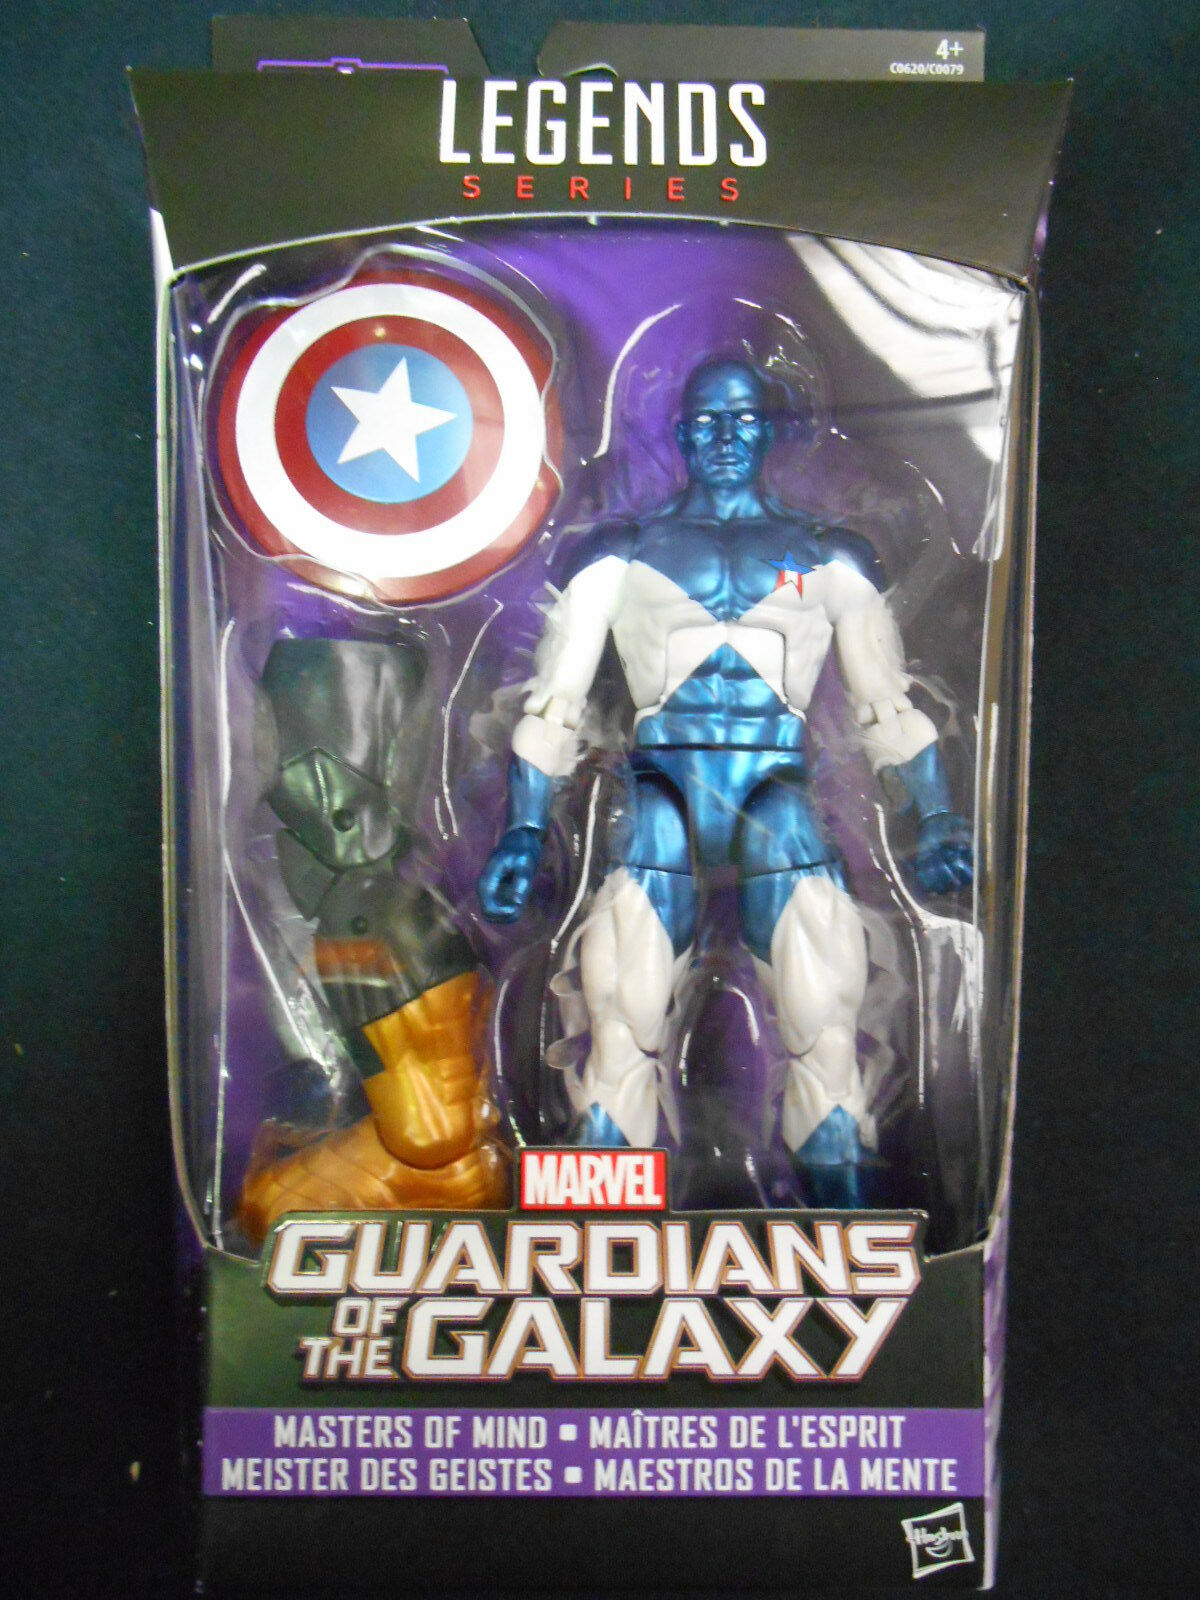 GUARDIANS OF THE GALAXY VOL. 2 LEGENDS SERIES  MASTERS OF MIND VANCE ASTRO